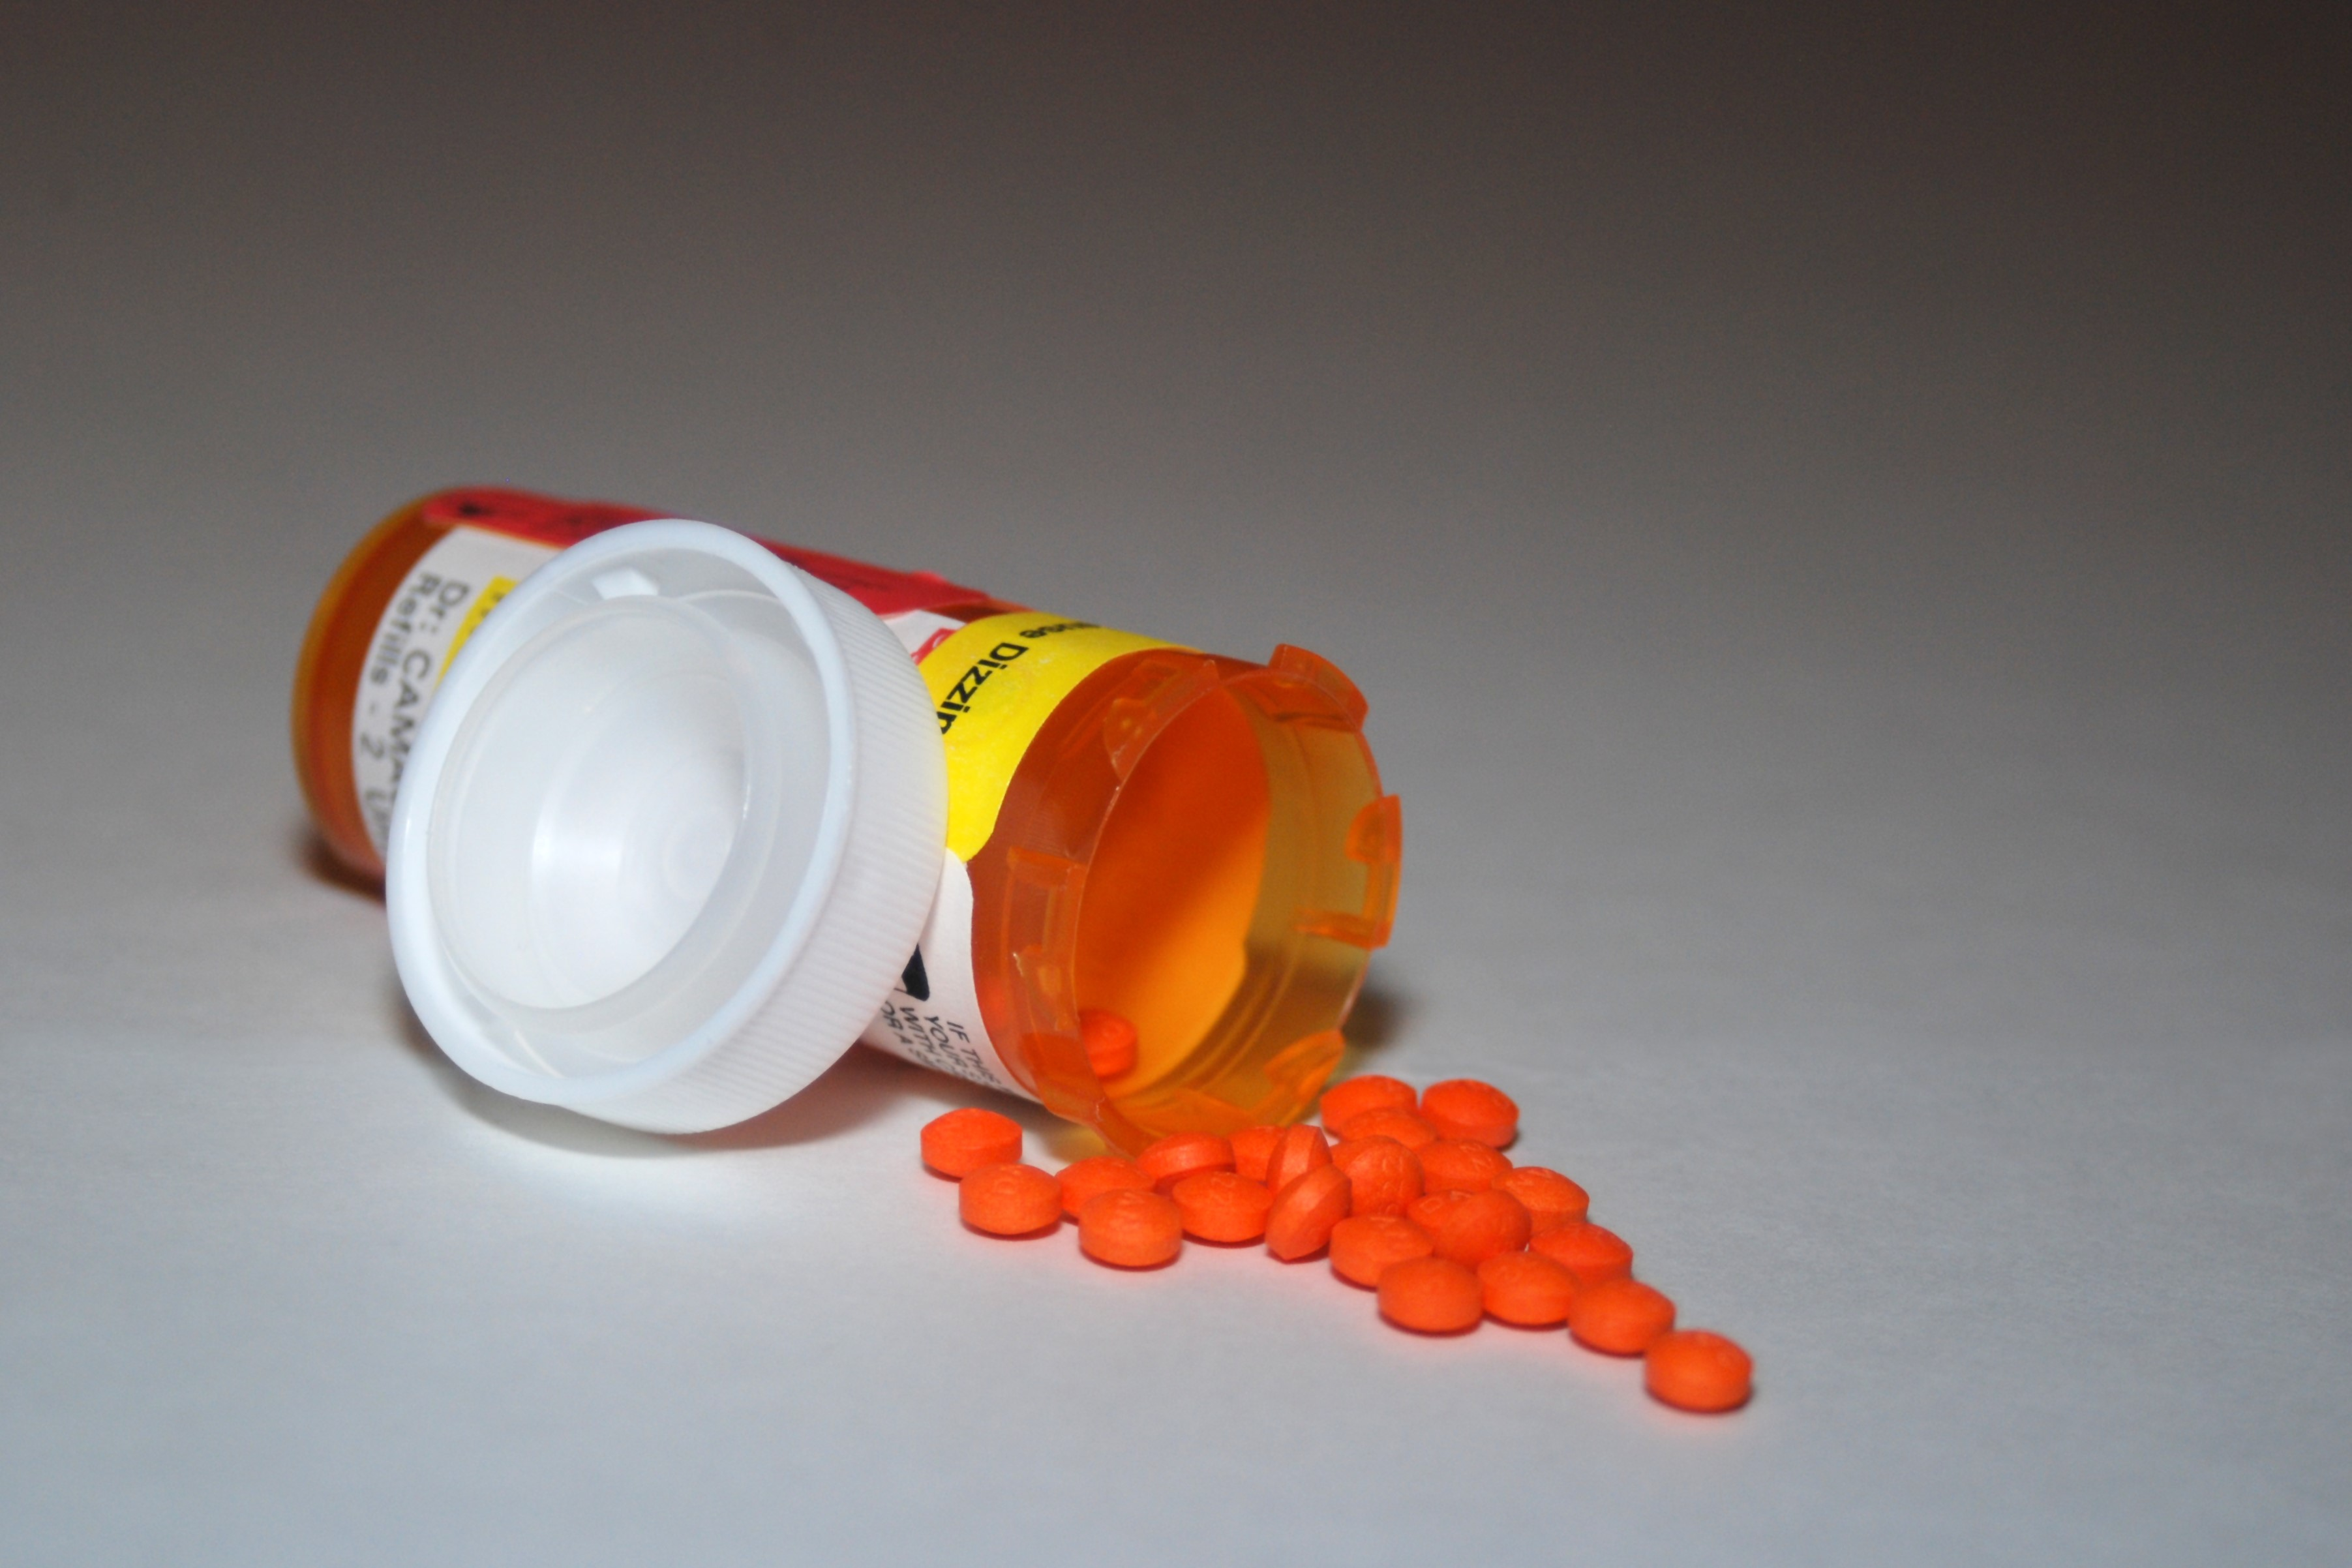 Opioid abuse has risen in the U.S. as drugs such as oxycodone and Vicodin have become more popular.